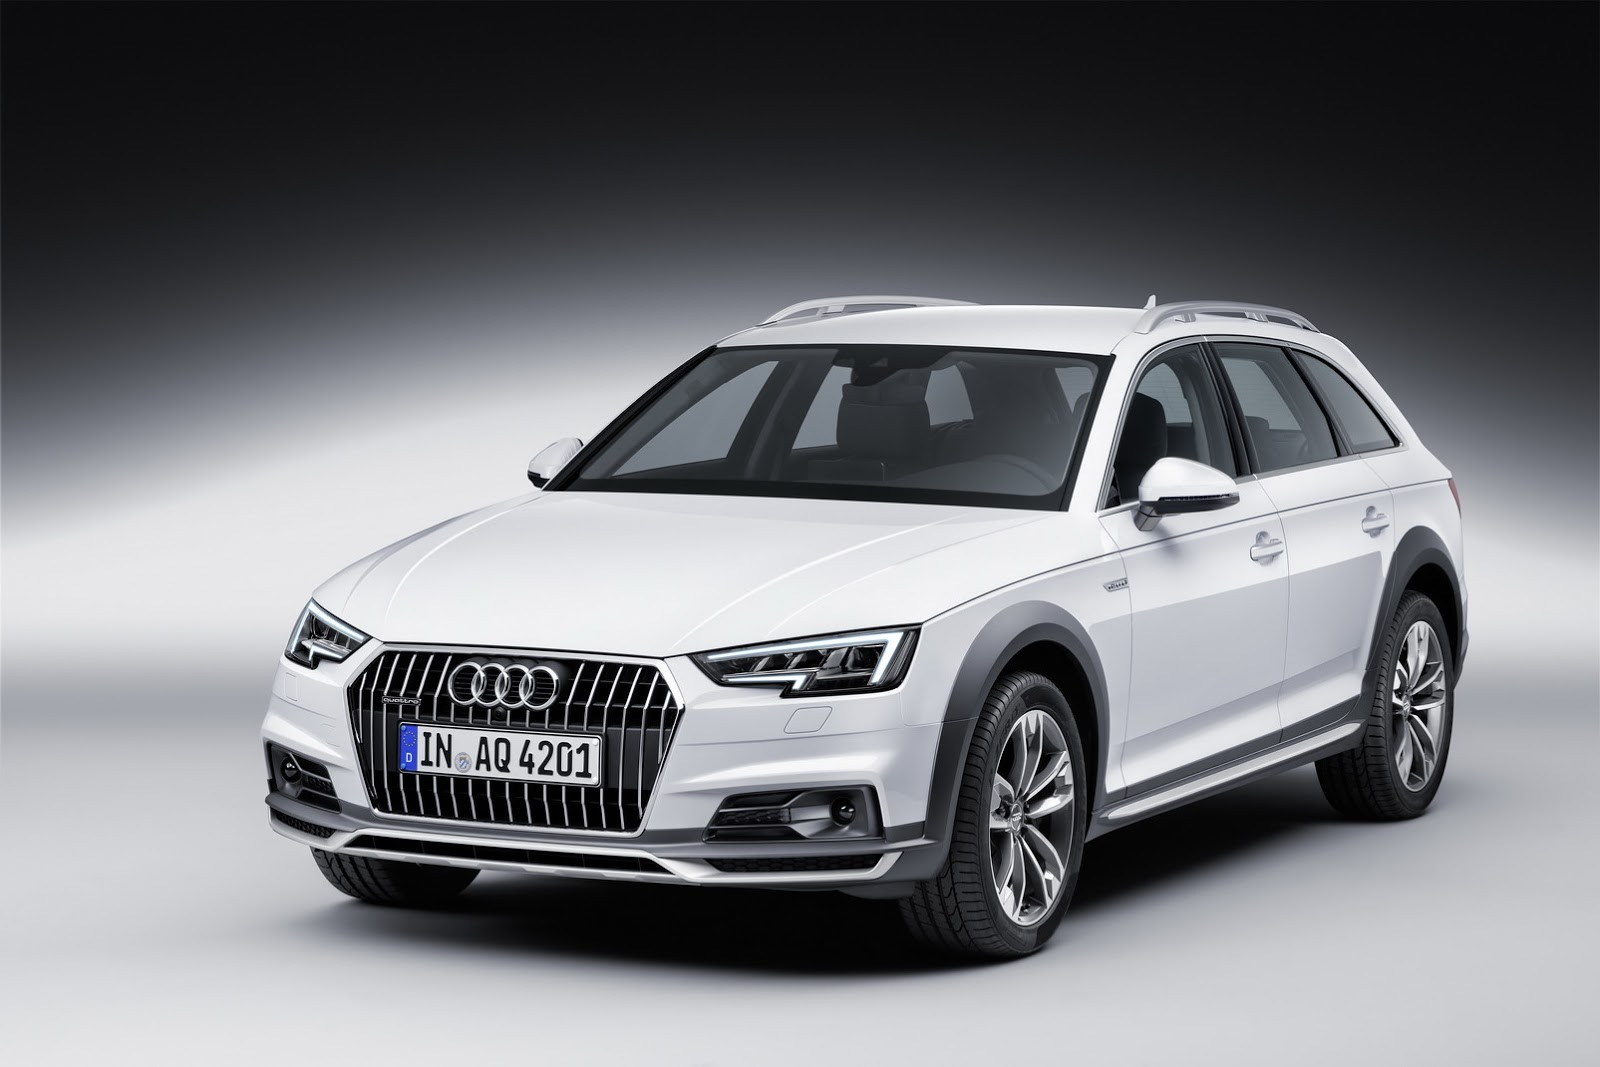 2016 audi a4 allroad quattro 2 0 tfsi 252 hp acceleration test autoevolution. Black Bedroom Furniture Sets. Home Design Ideas